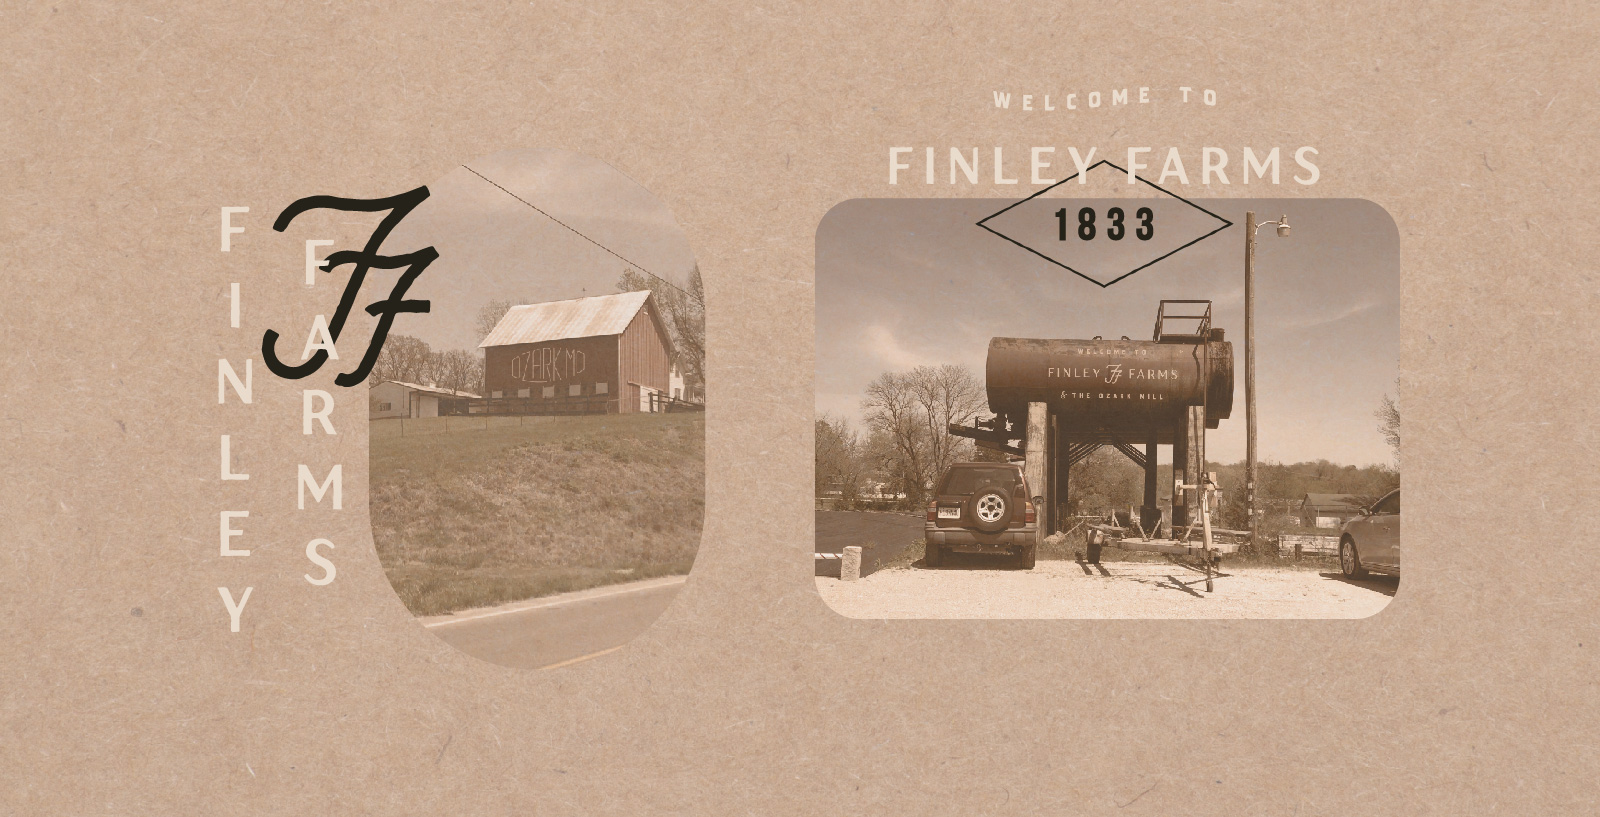 finley-farm-photos